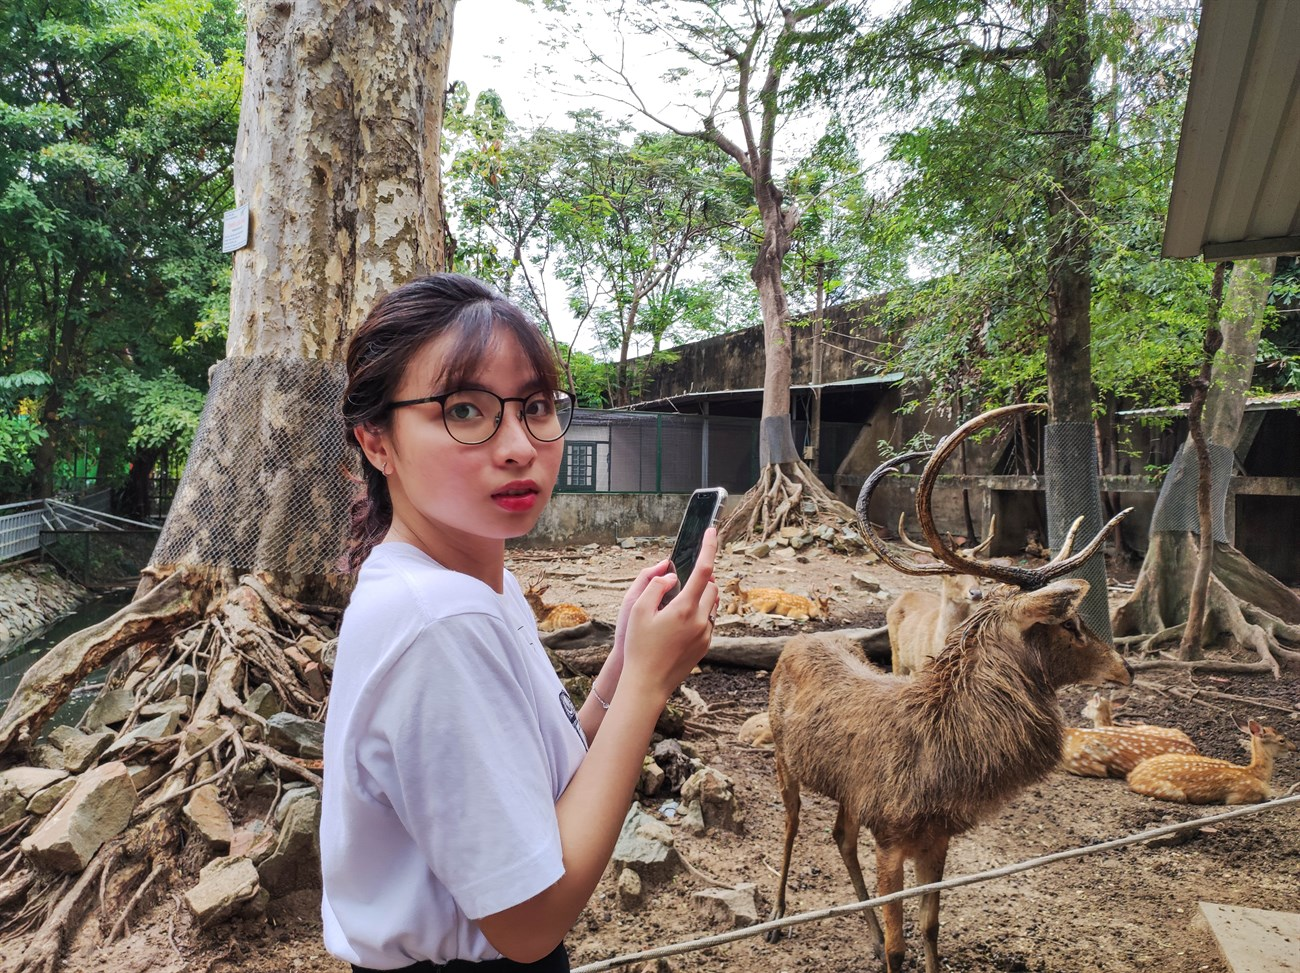 This is the face when seeing with my own eyes the long horn of the head deer